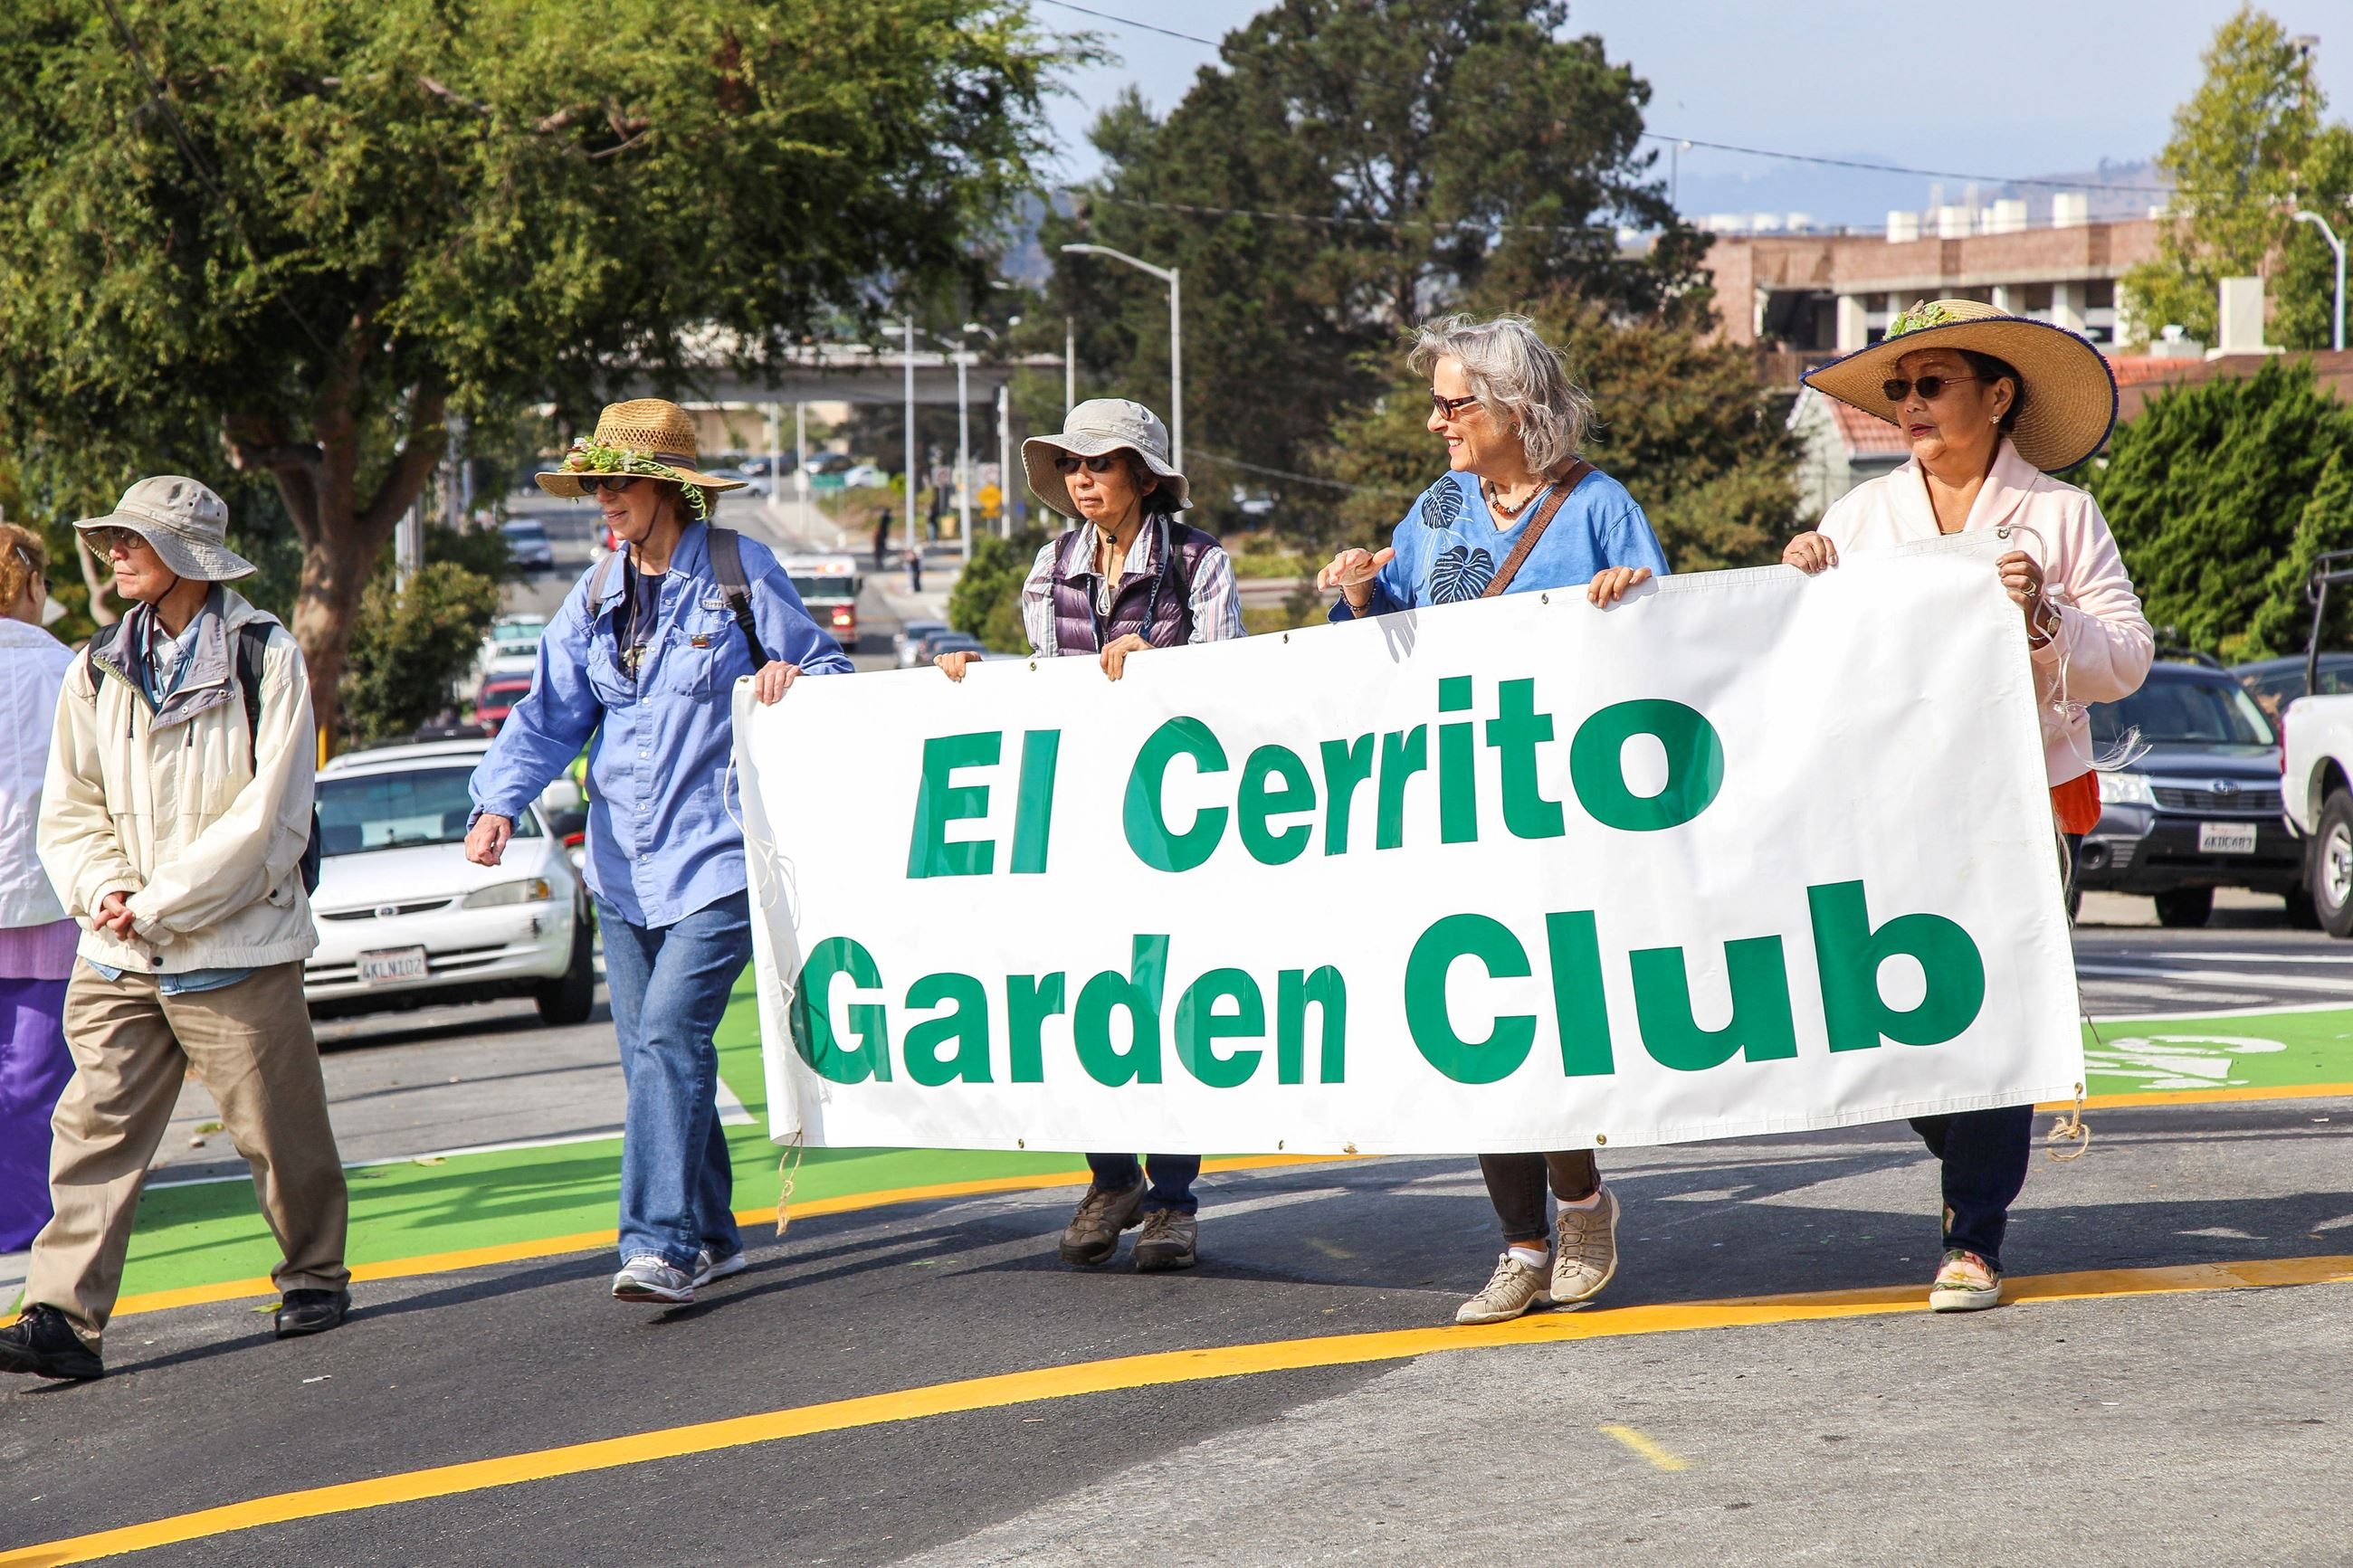 279 Garden Club in Parade 1 - Photo by Marin Stuart